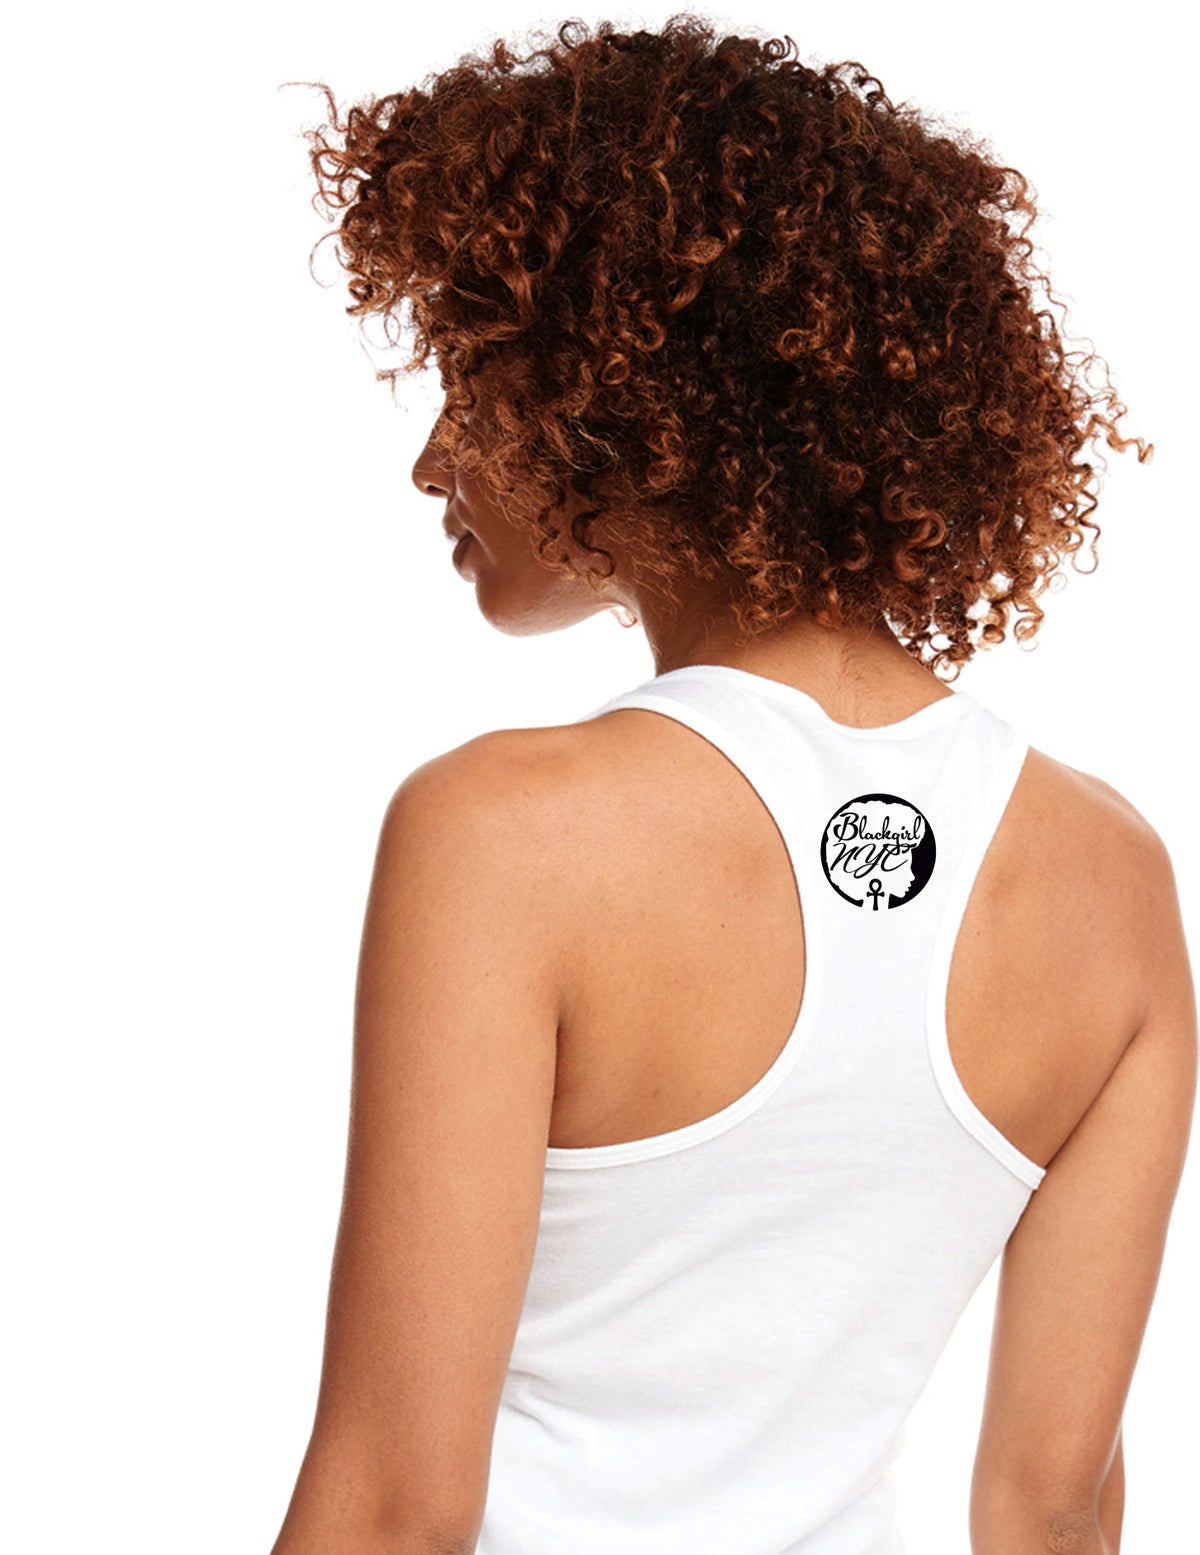 Image of White Racerback Tank with  Blackgirl NYC design